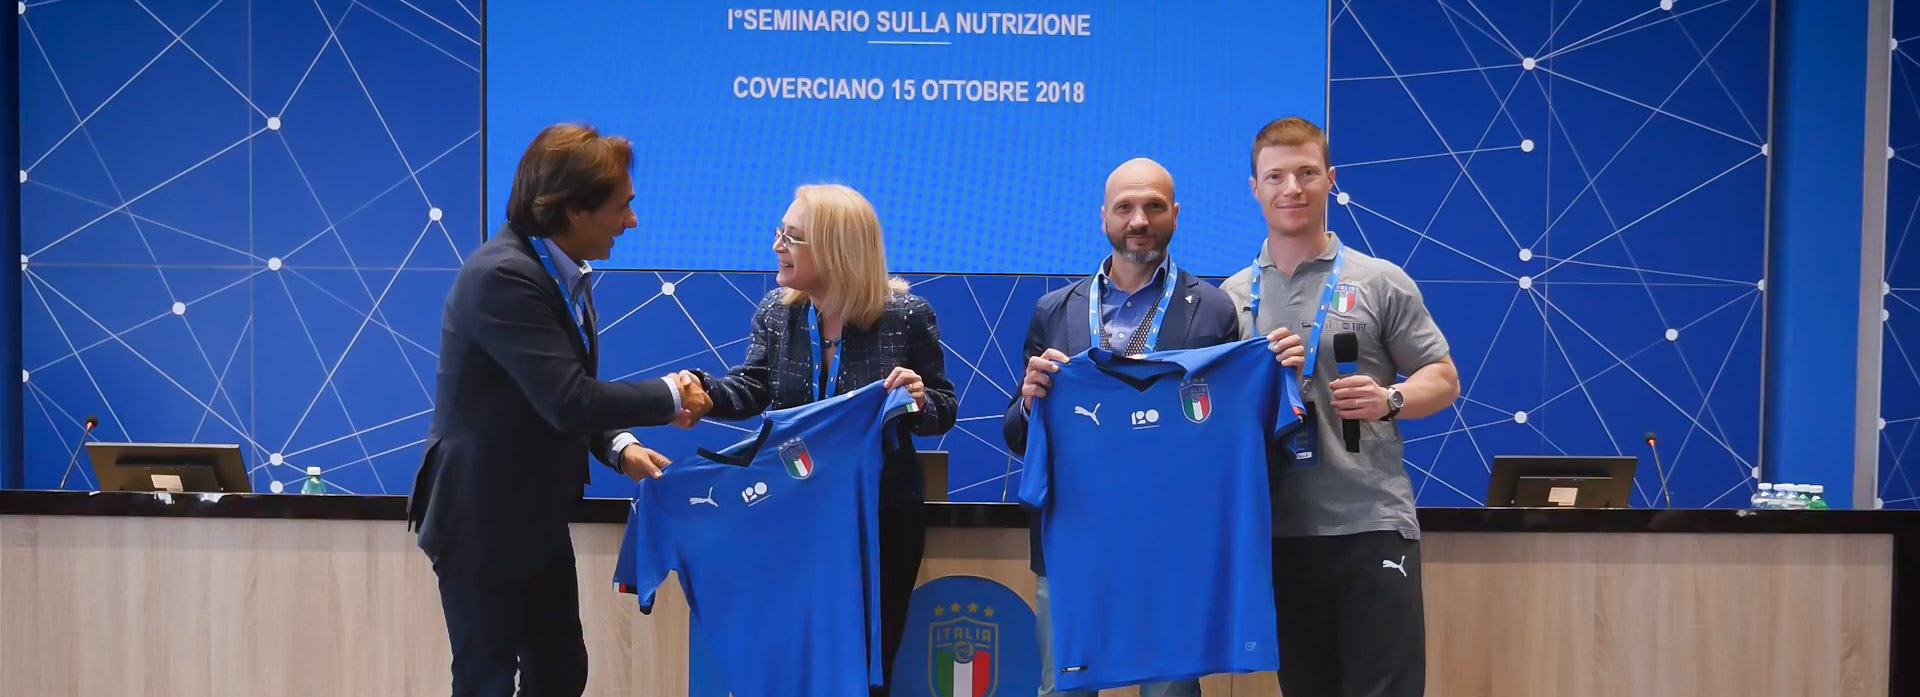 Head of Nutrition Italian Football team